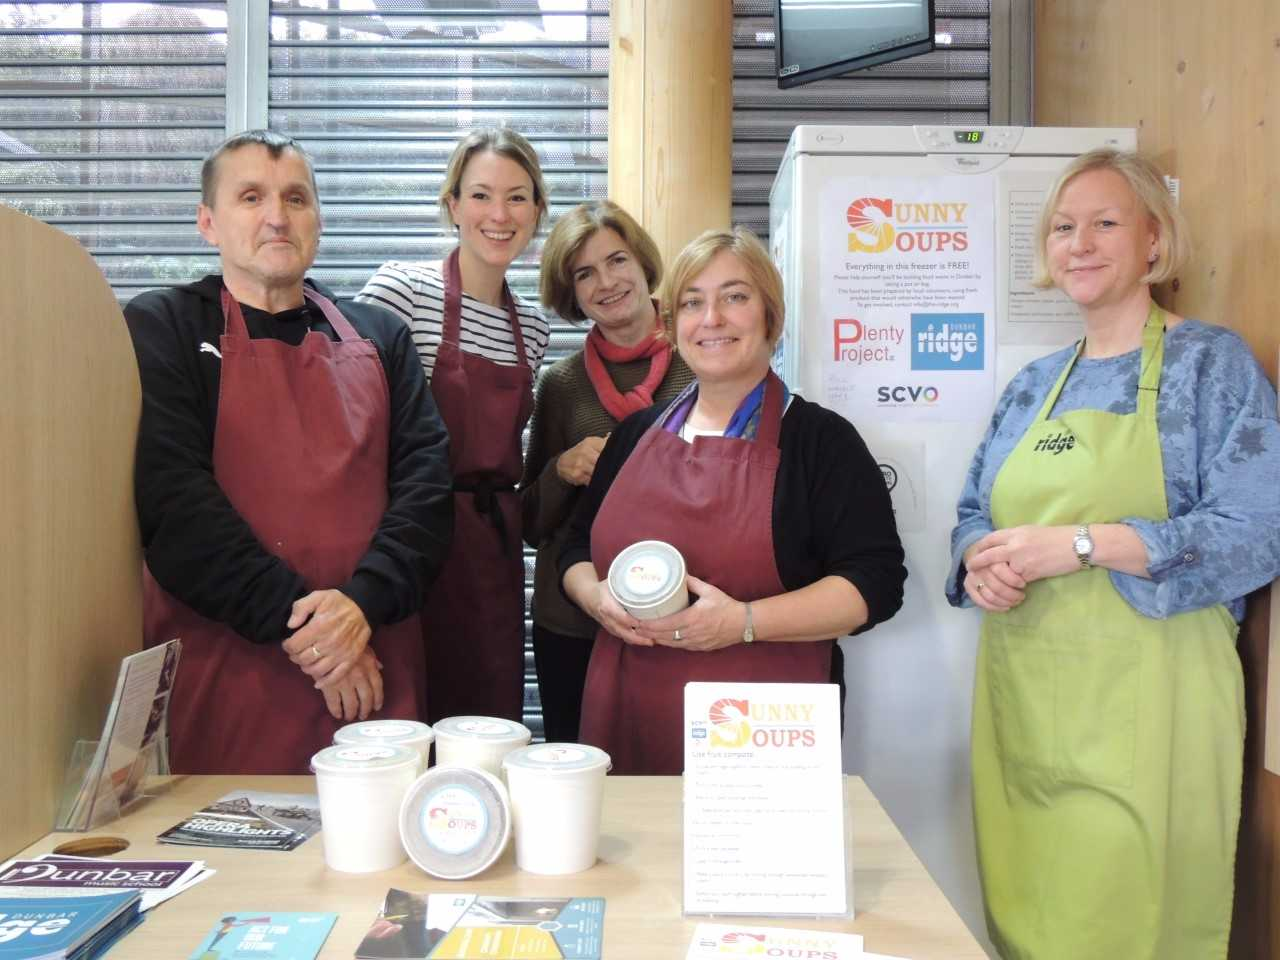 Colin Runciman, volunteer; Hannah Ewan, community cooking teacher; Kate Darrah, managing director, The Ridge; Isobel Knox, volunteer; and Sue Mitchell, manager of The Ridge Cafe, are doing their bit to transform food destined to be thrown out